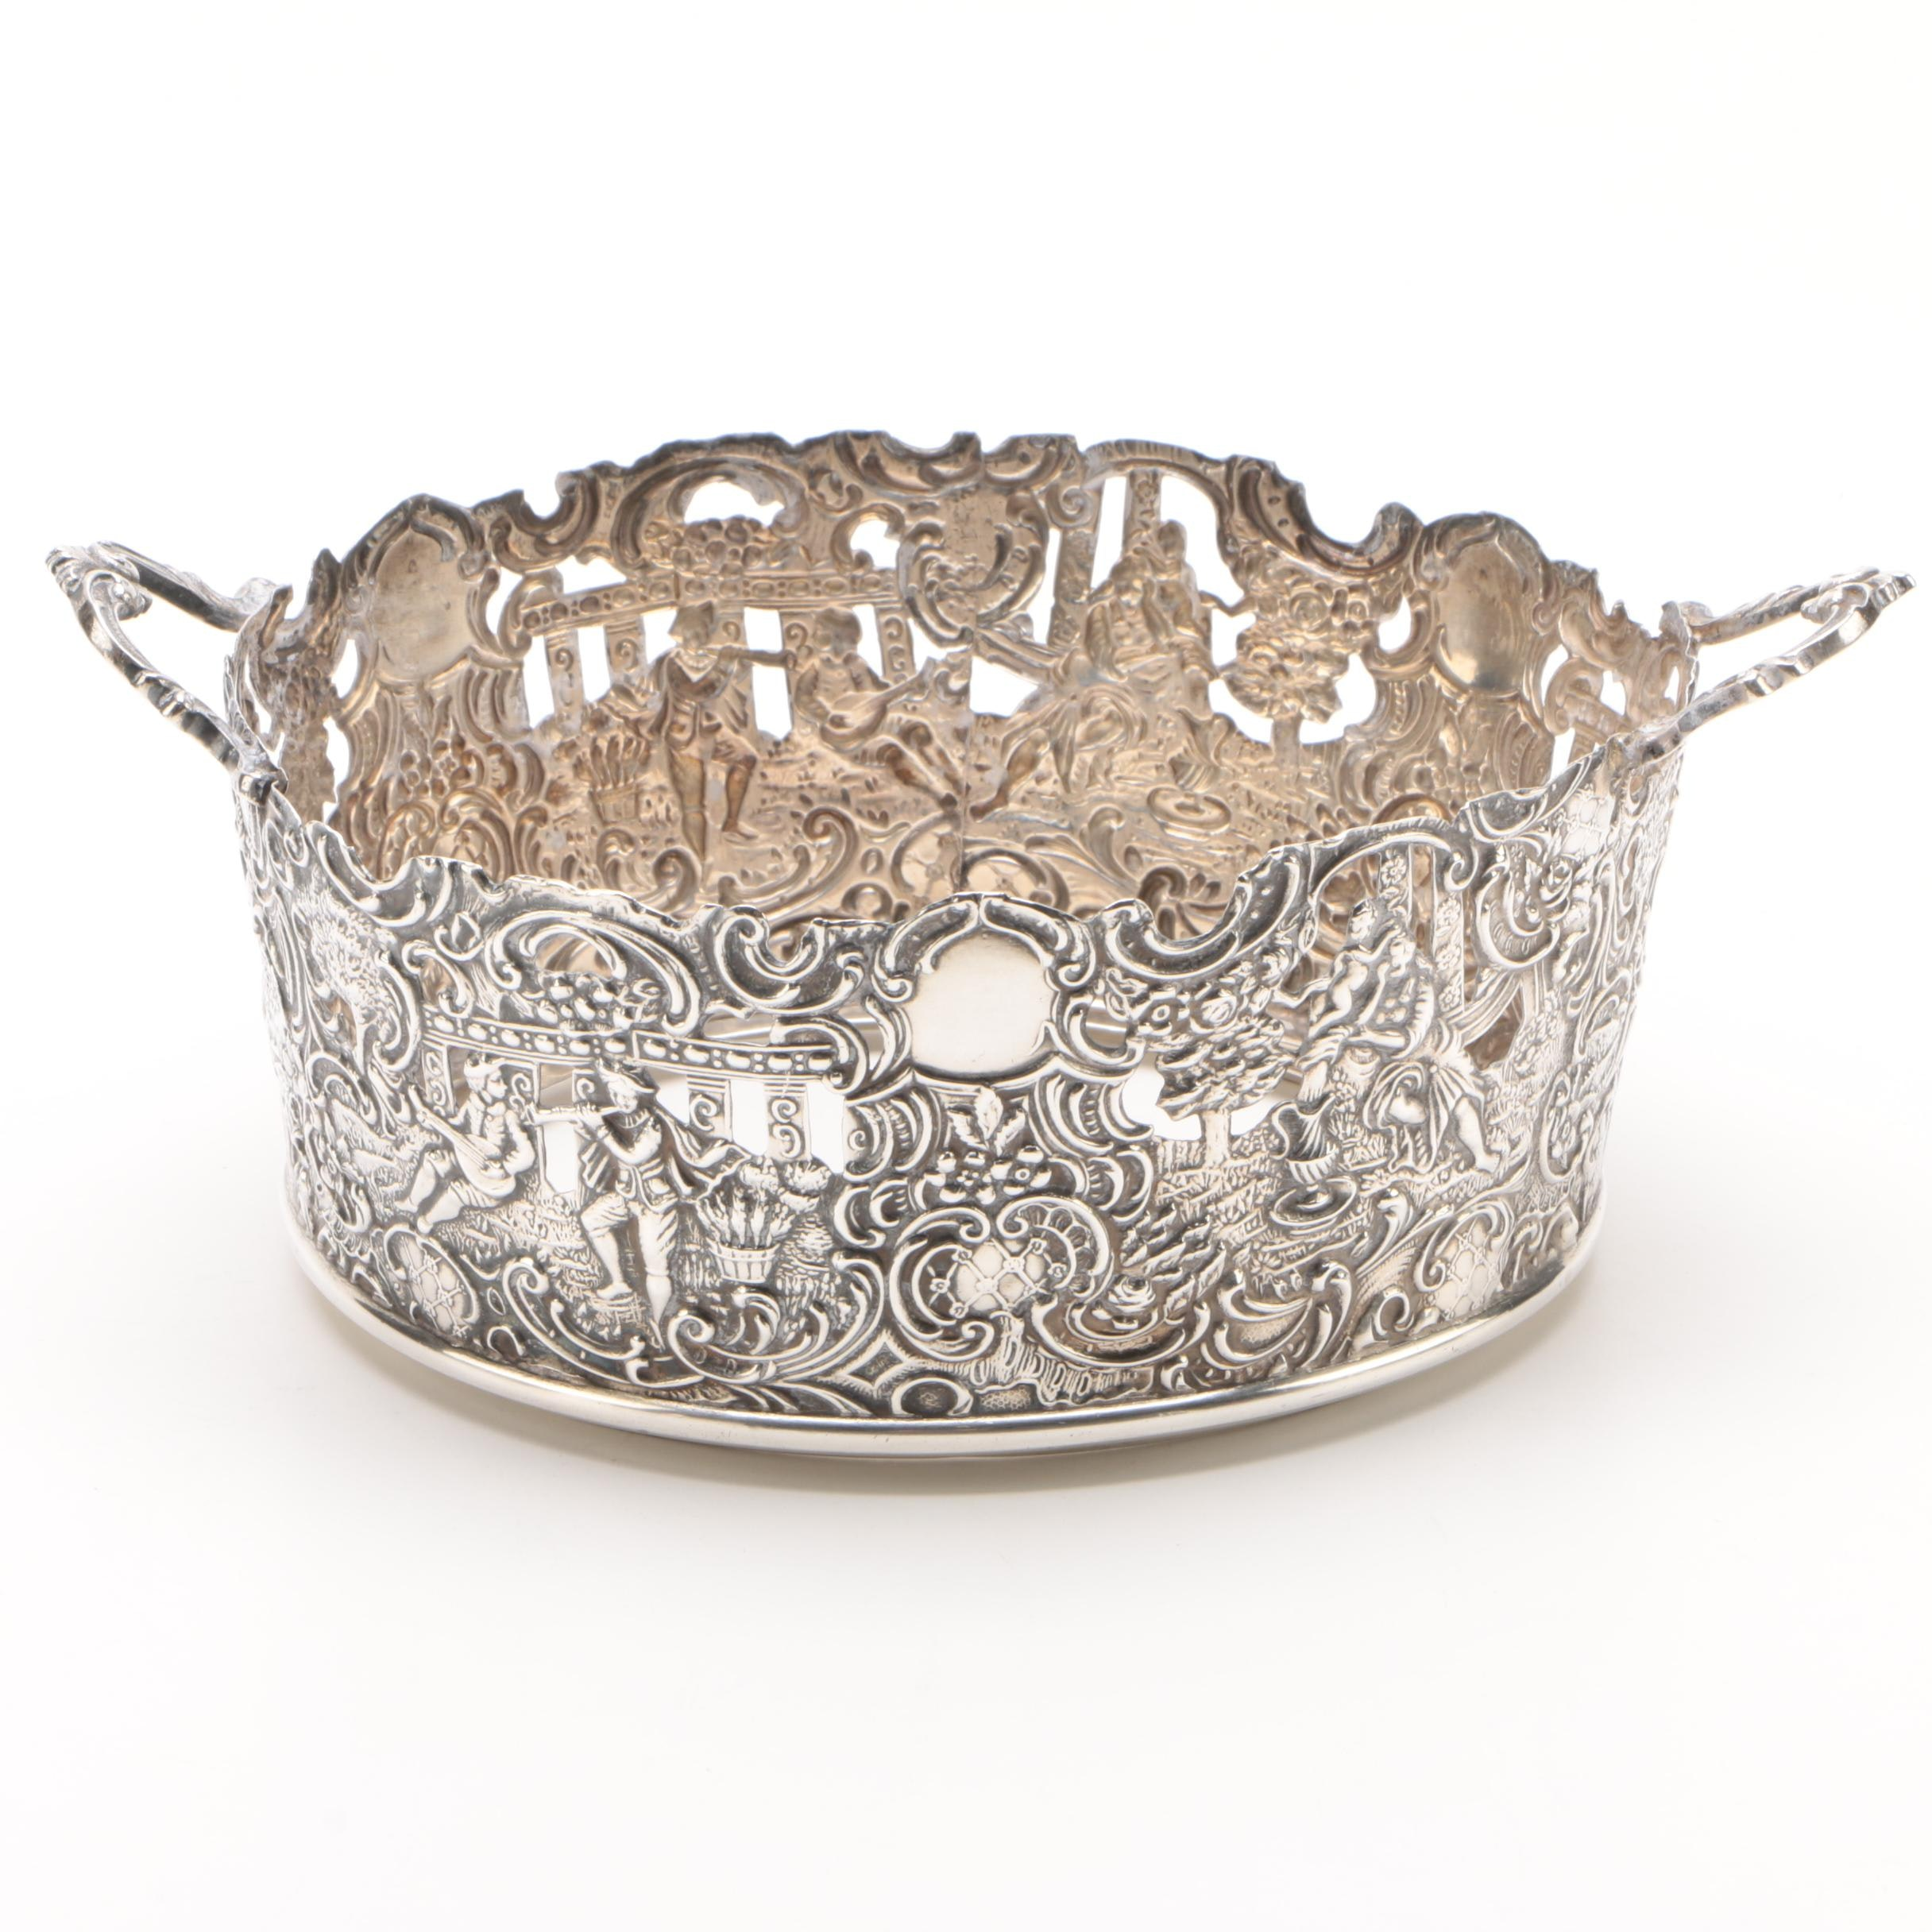 Brand-Hier Co. Sterling Openwork Repoussé Two-Handled Basket, Early 20th Century